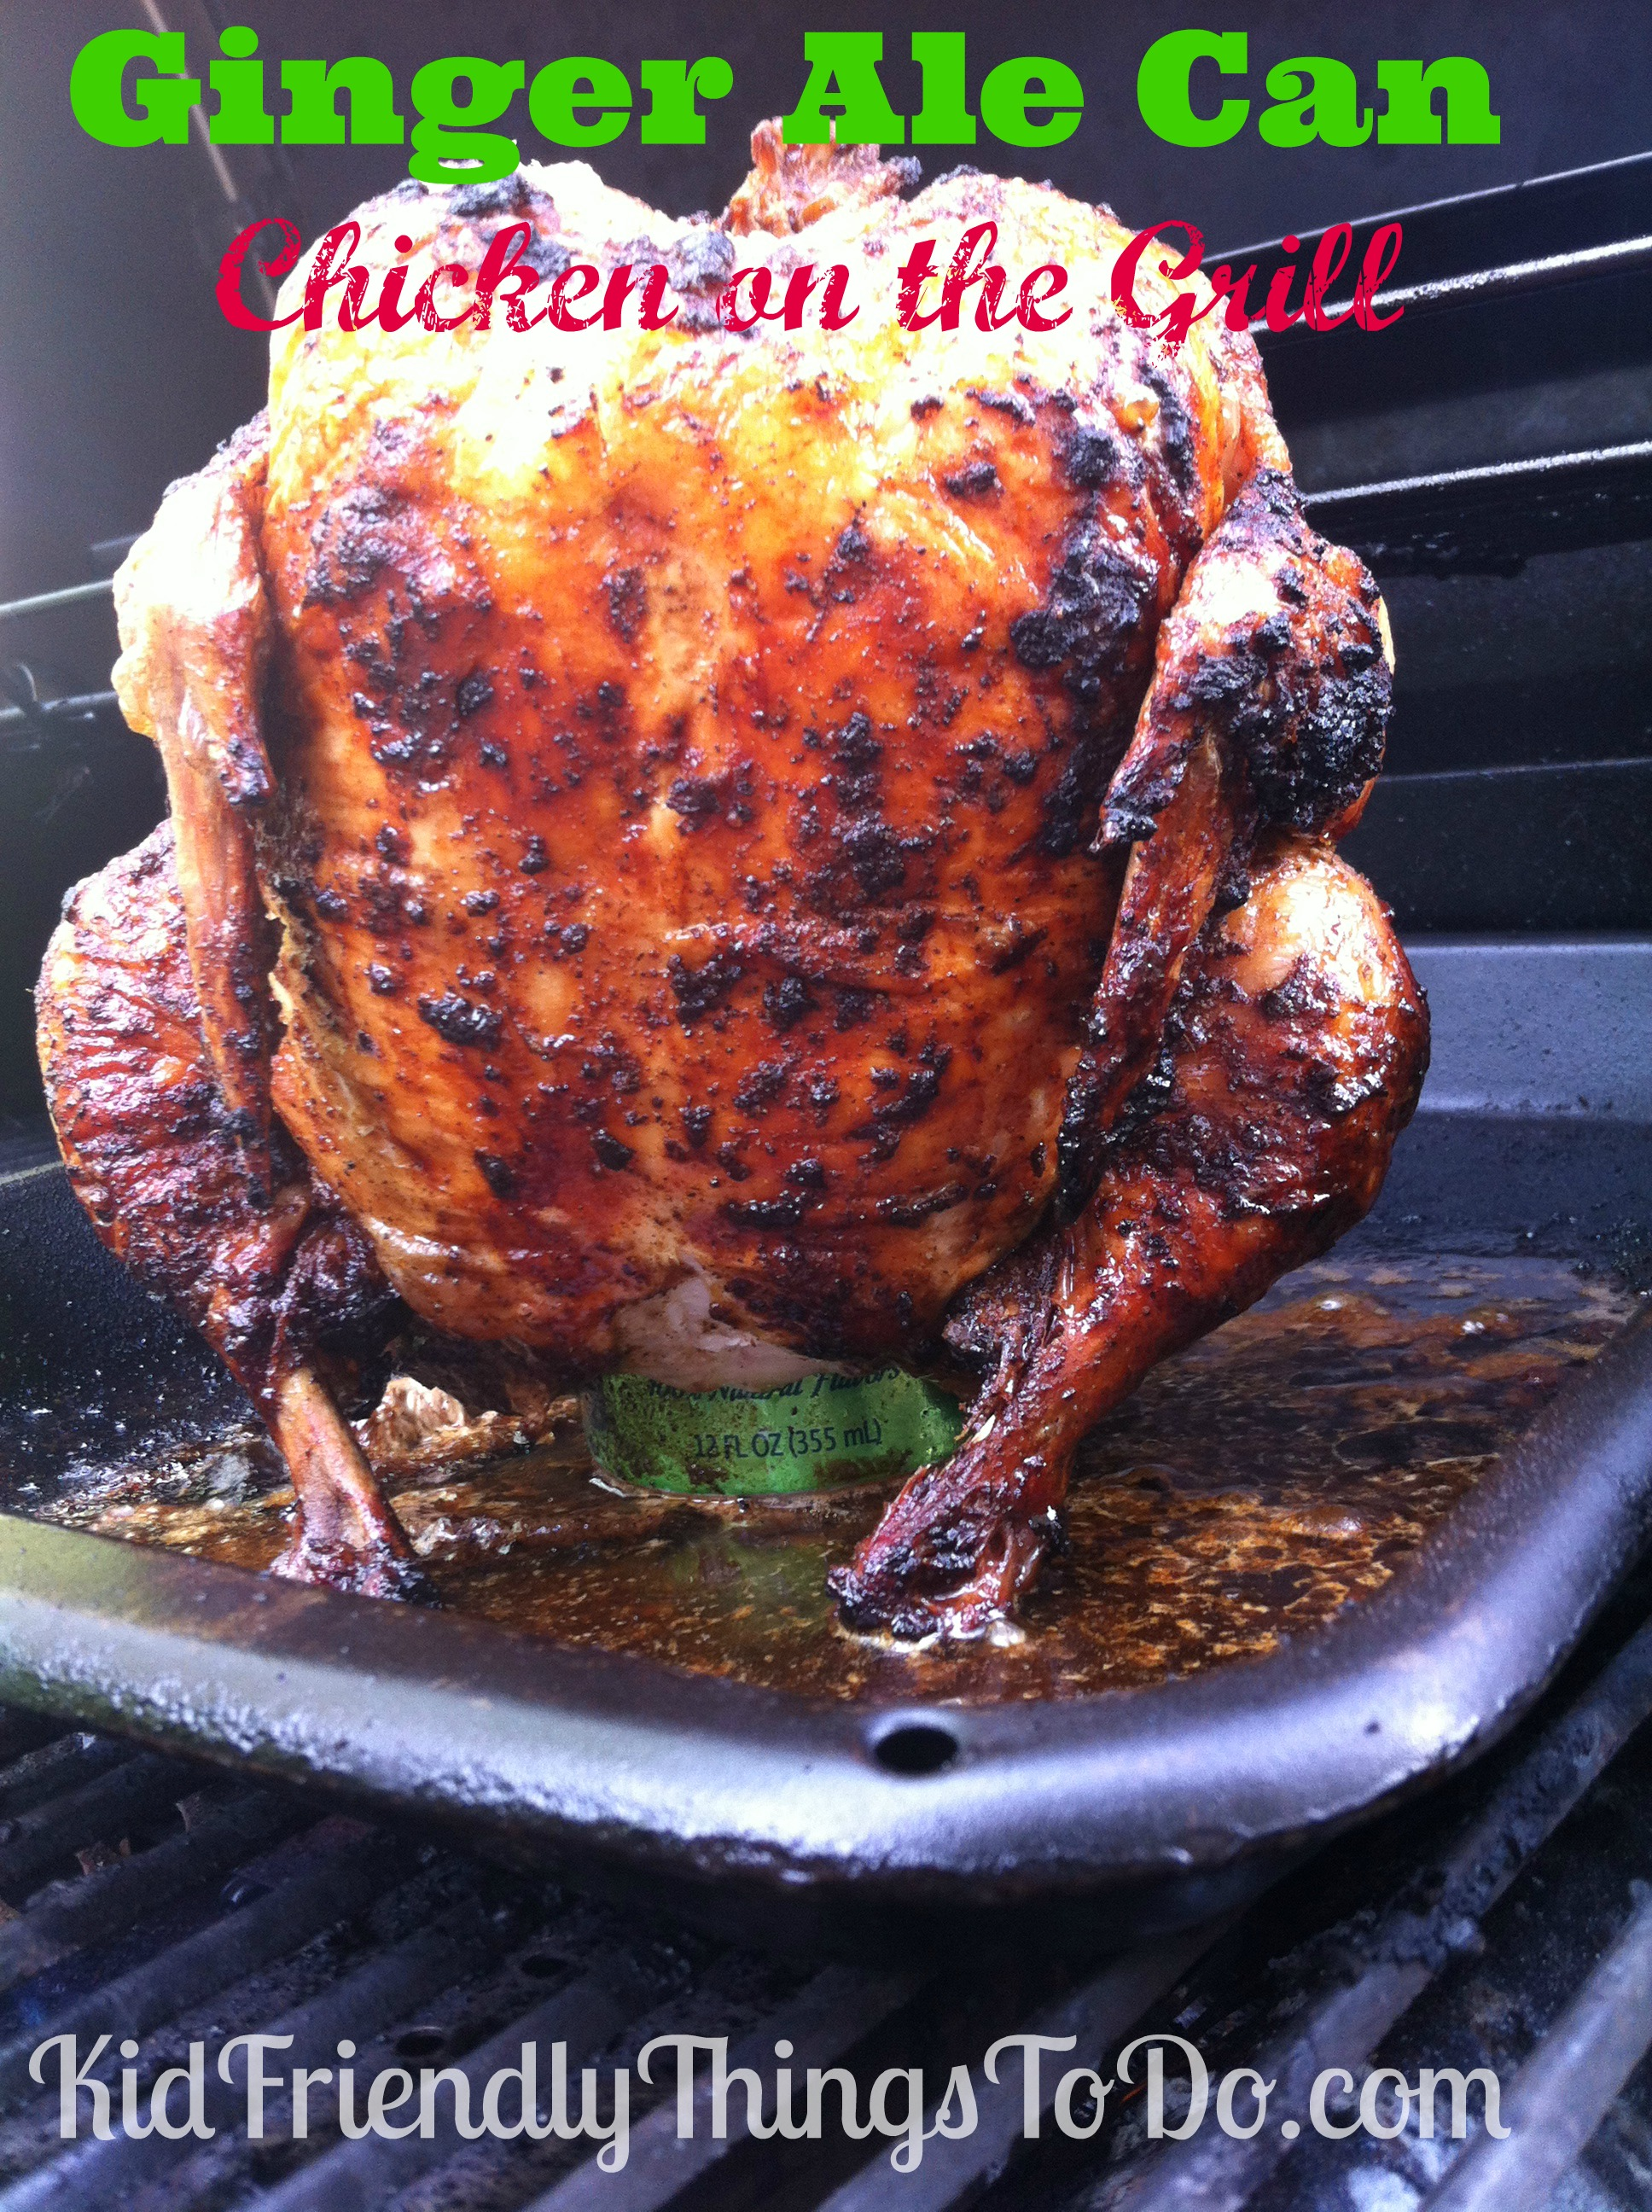 Ginger Ale Can Chicken on the Grill. What a cool idea! Love the glaze. Yum!